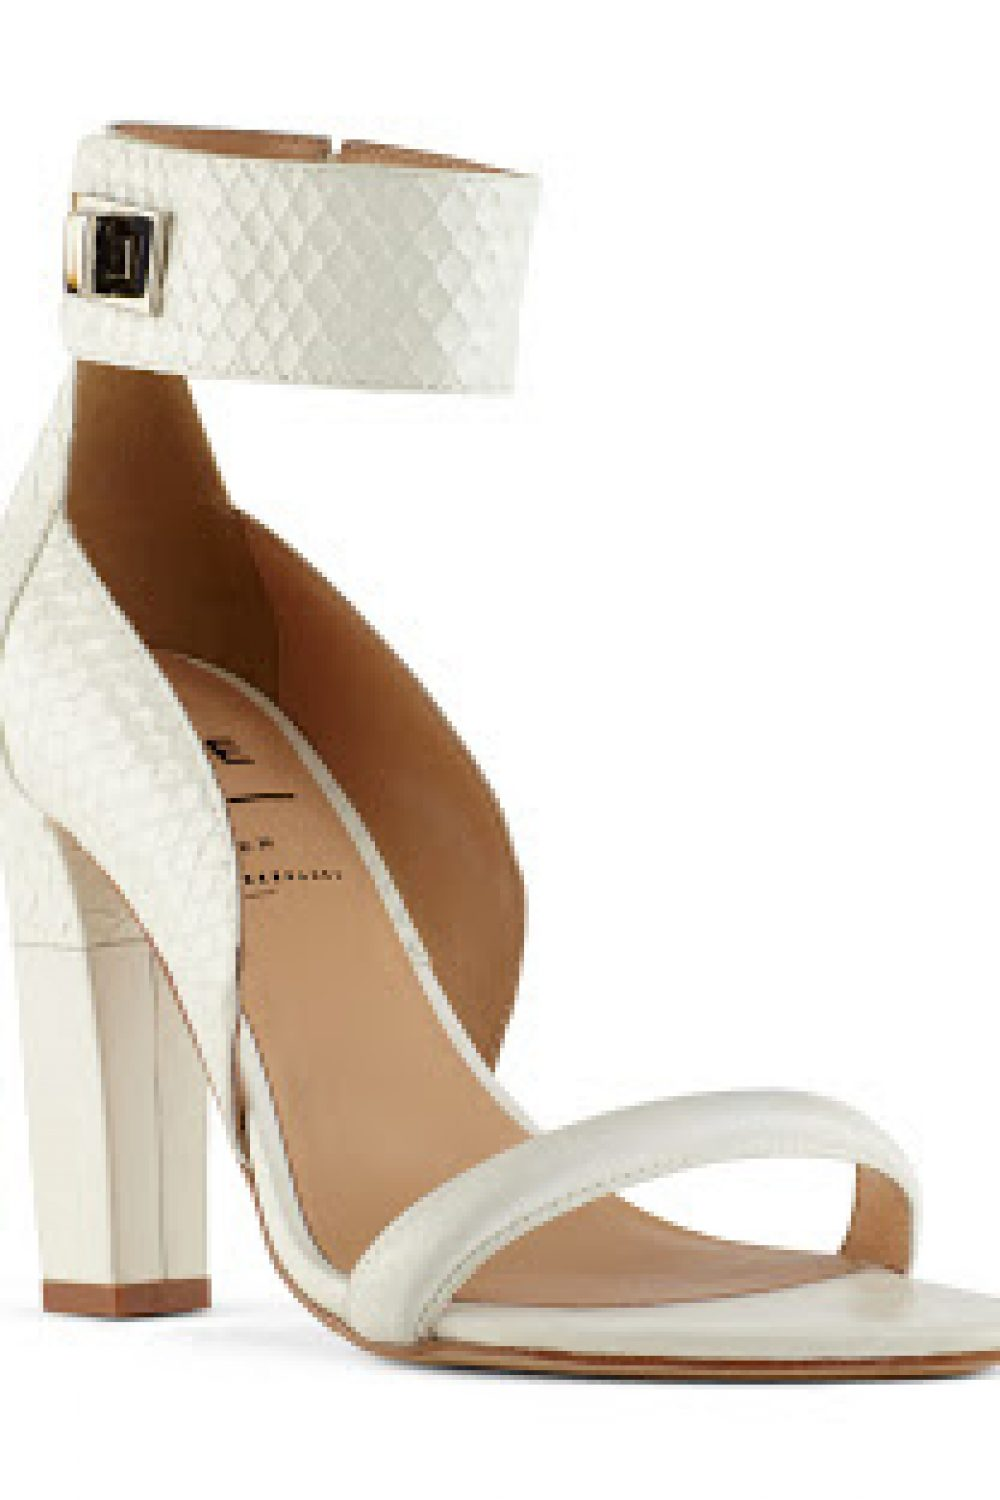 ALDO Rise x Preen (Currently Swooning Over)